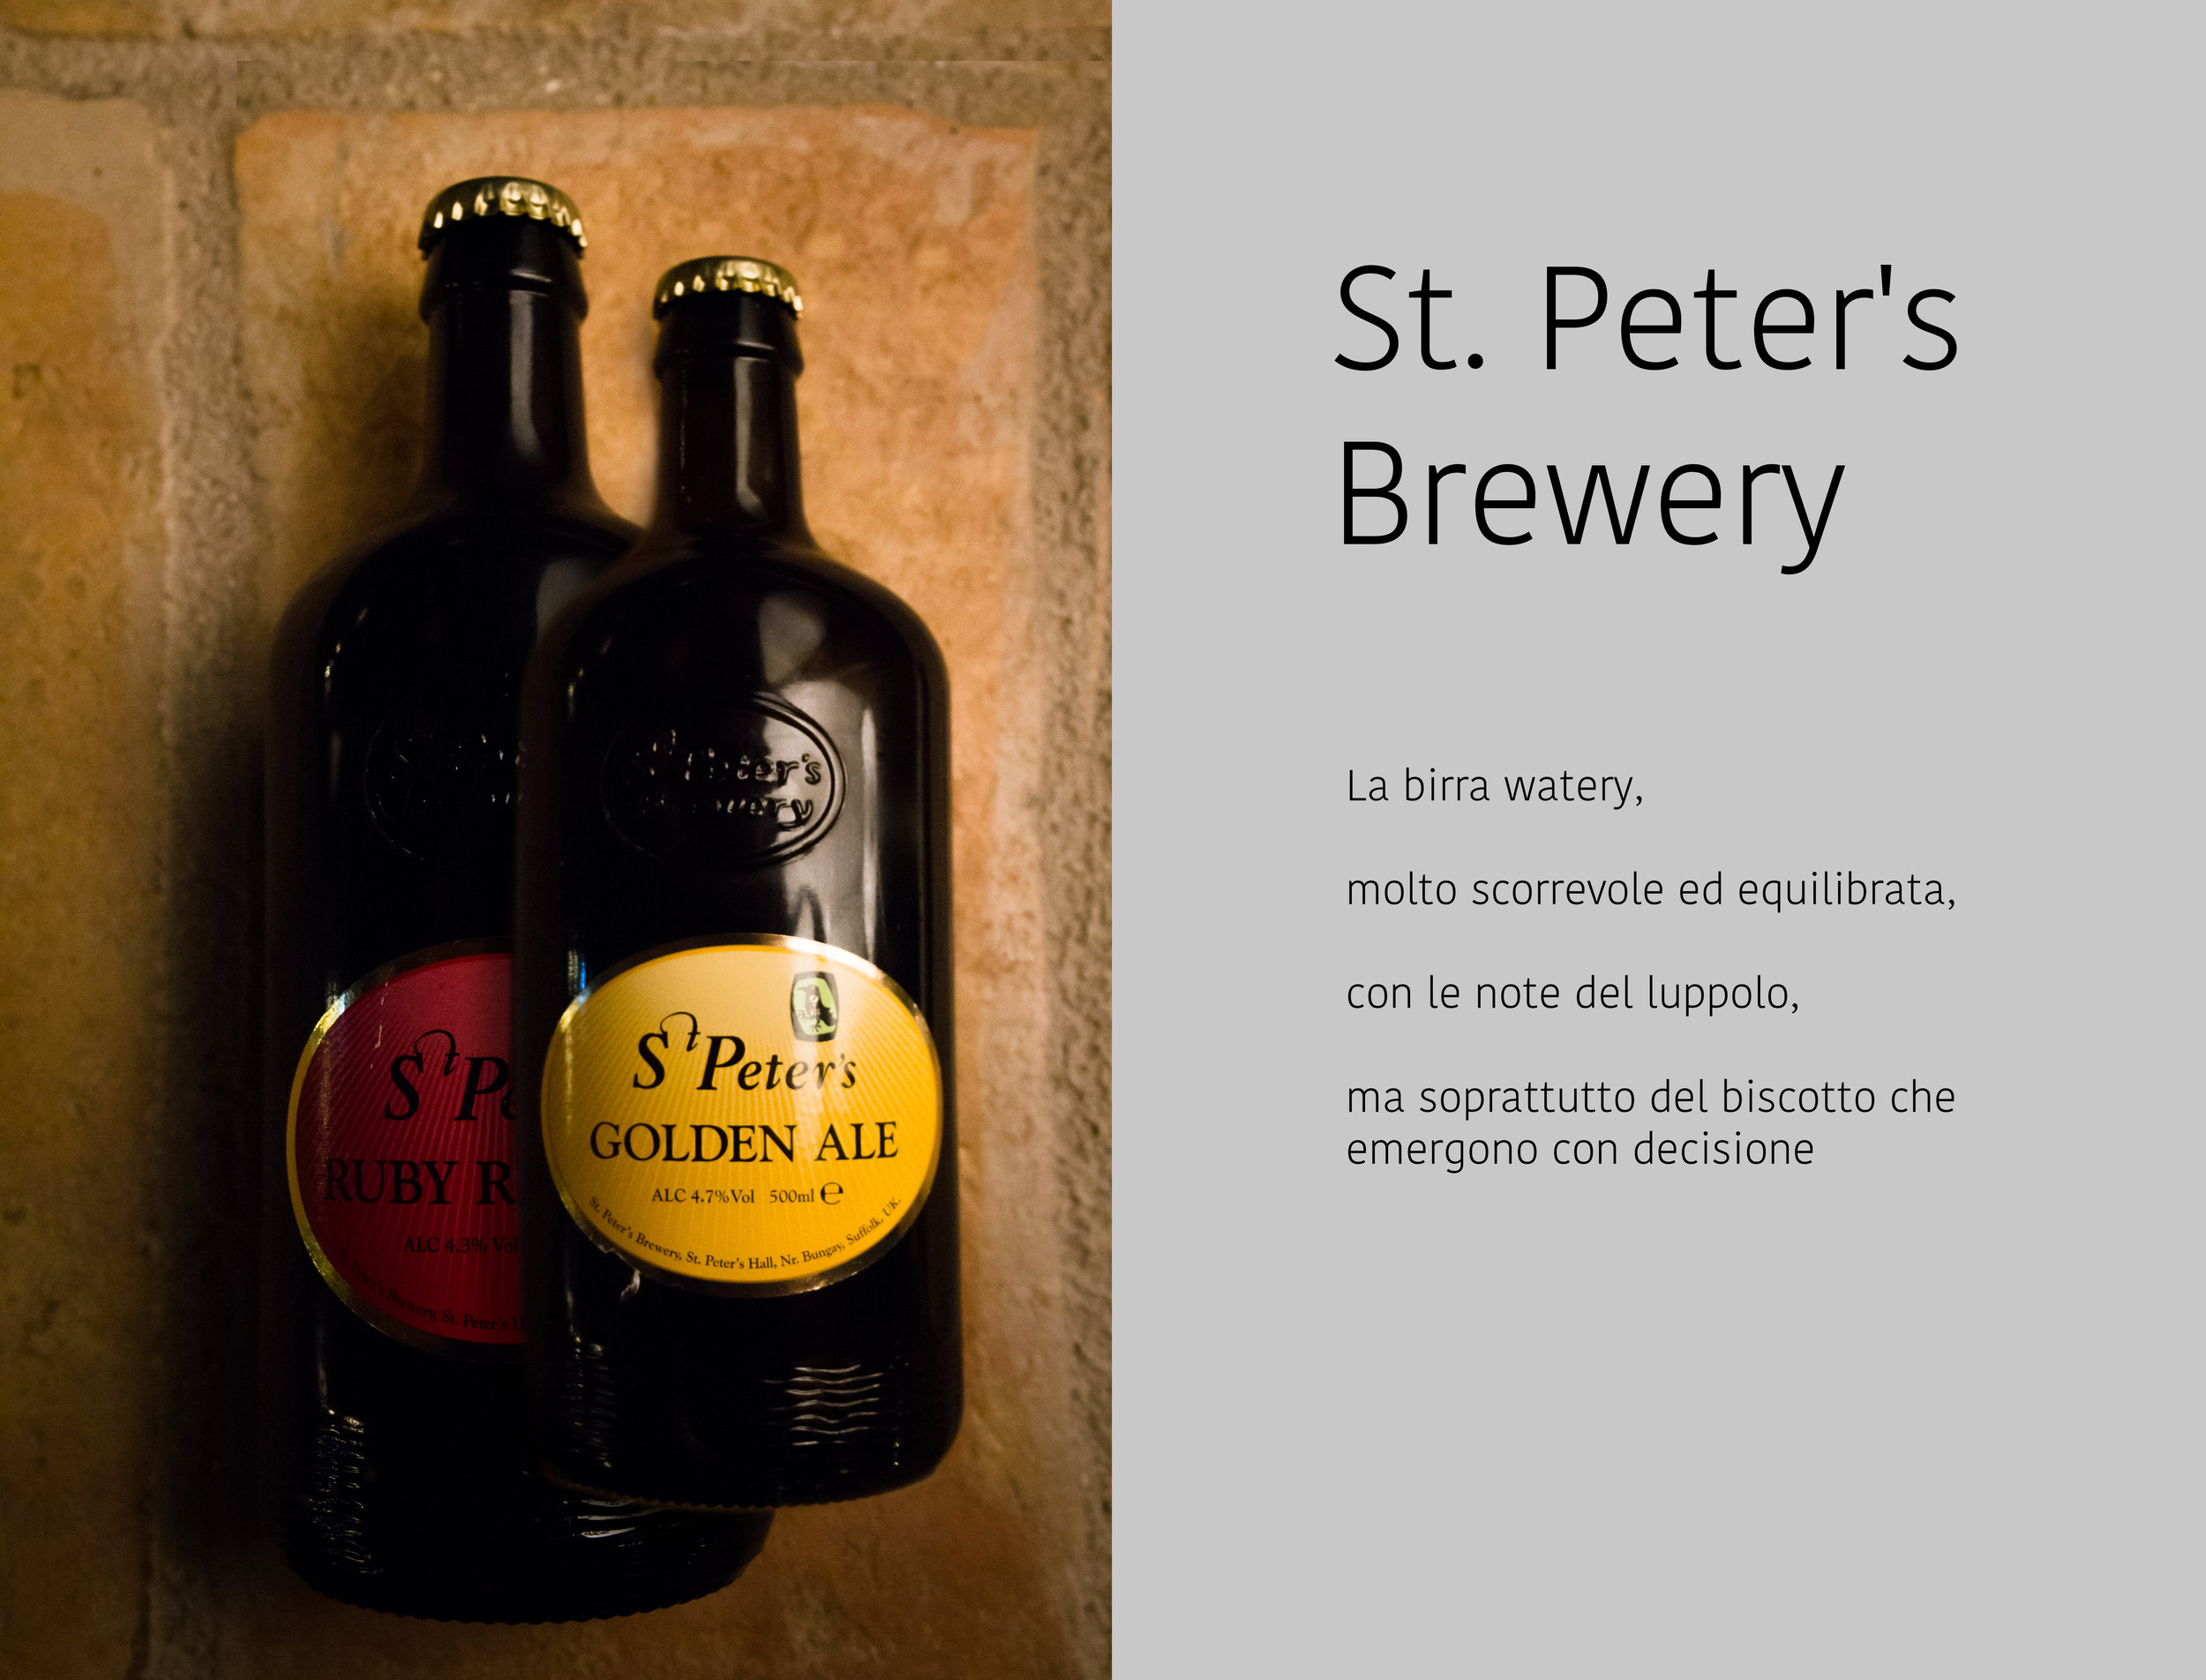 Composition_St.-Peter's-Brewery.jpg